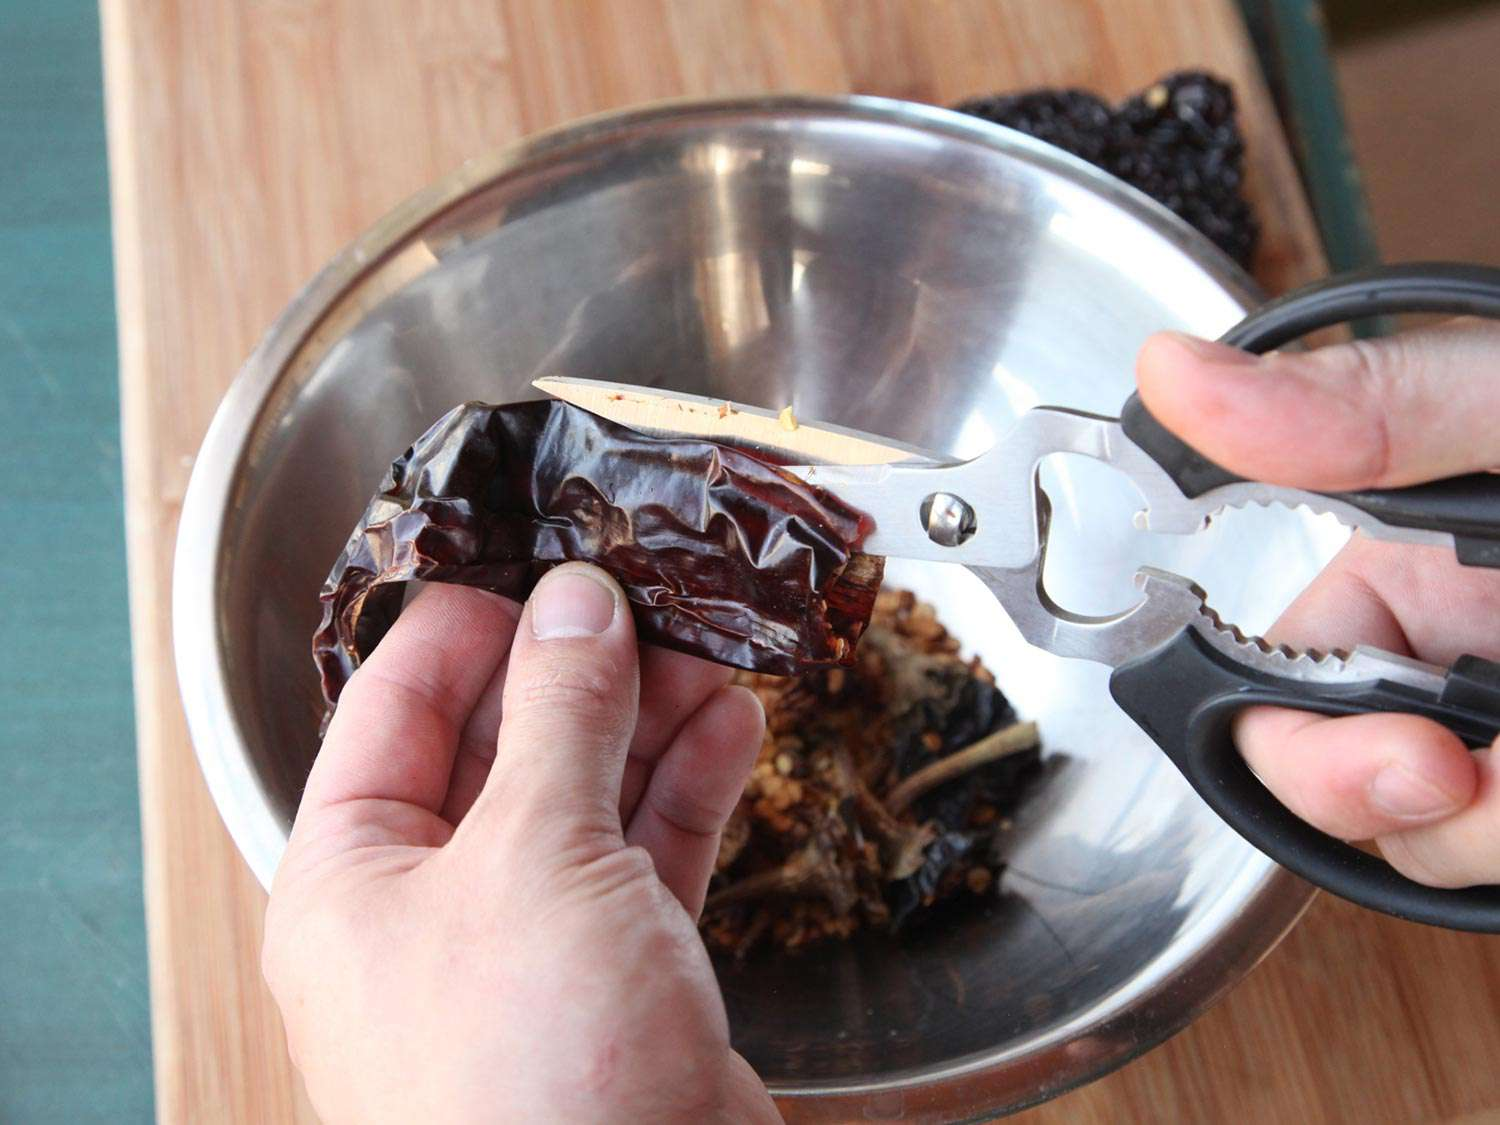 20150205-how-to-clean-chilies-03.jpg